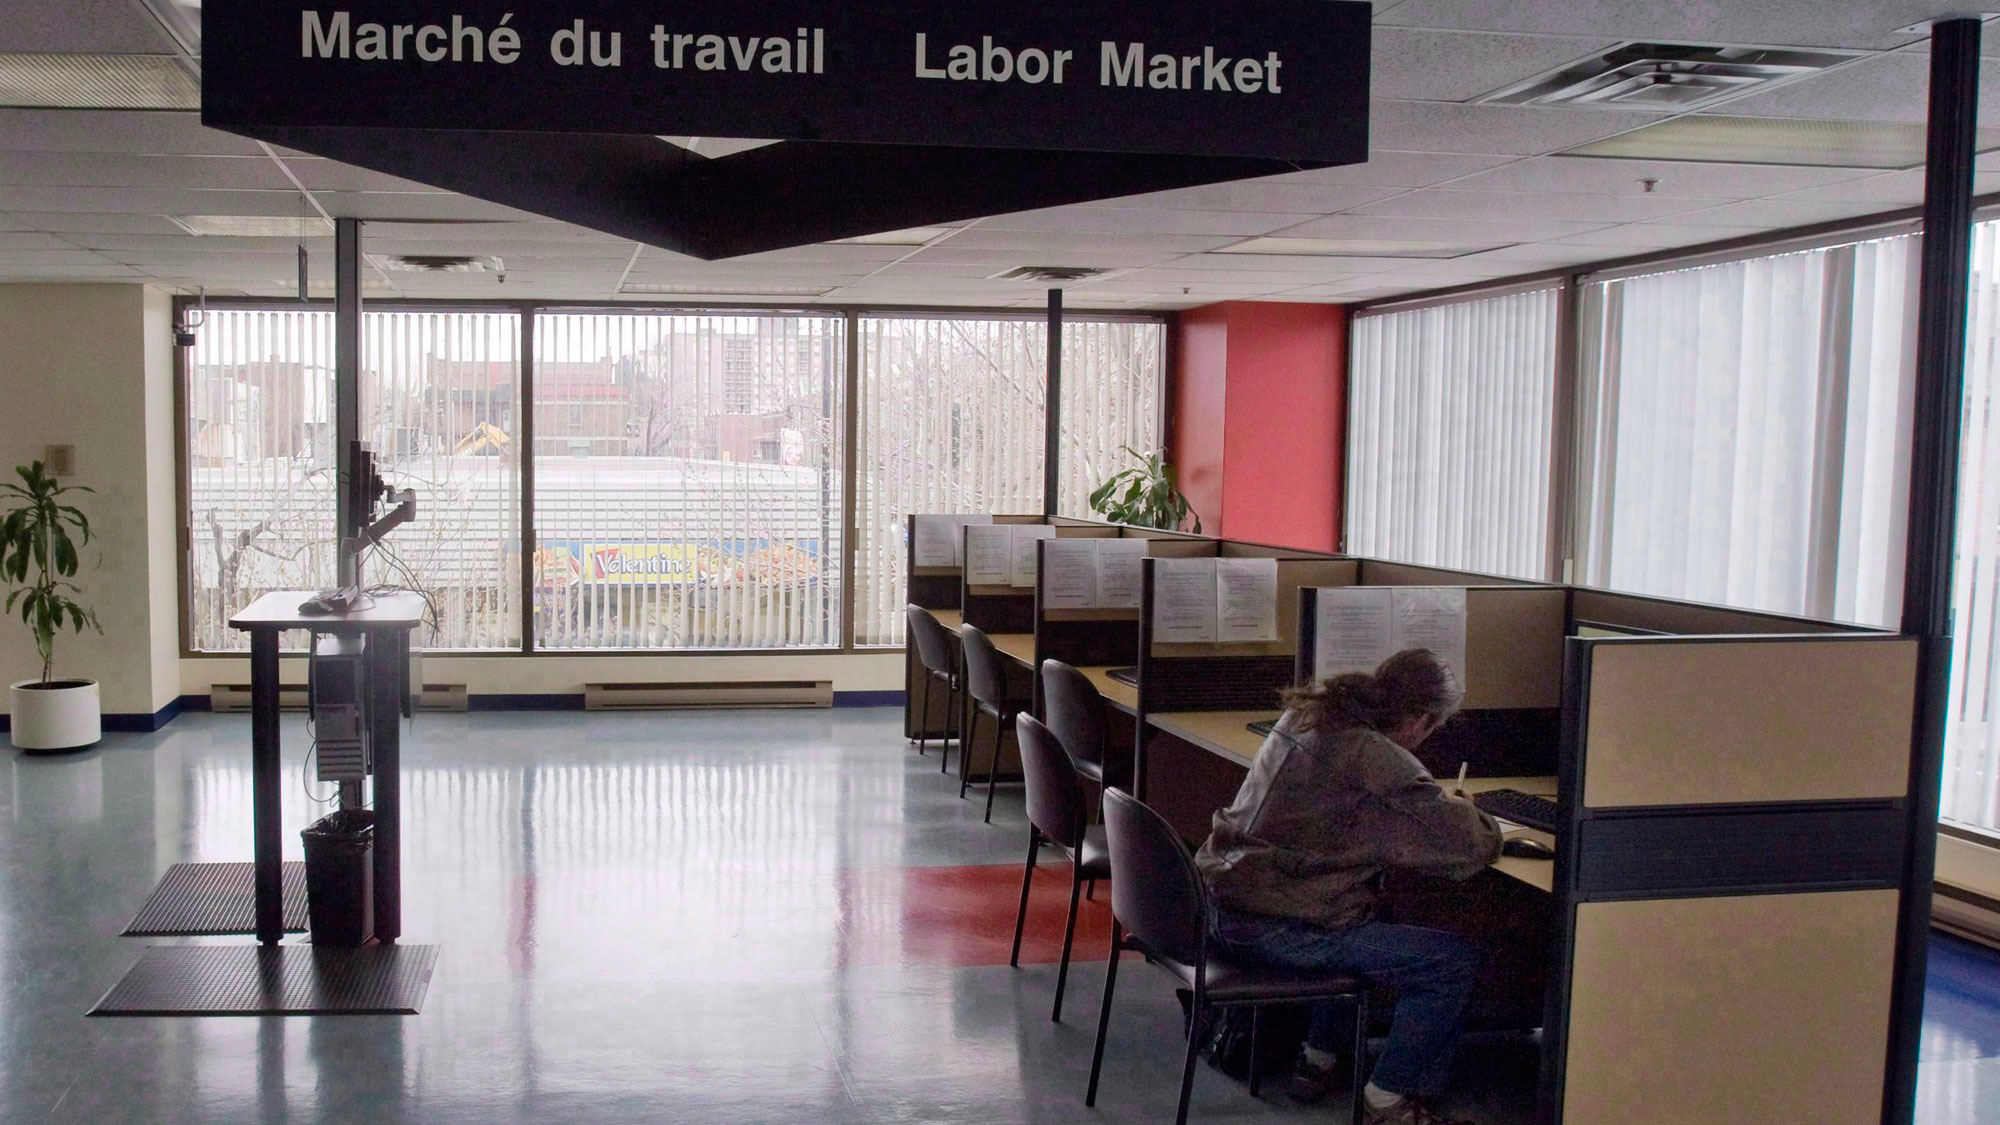 A Man Looks Through Jobs At Resource Canada Offices In Montreal April 9 2009 THE CANADIAN PRESS Ryan Remiorz